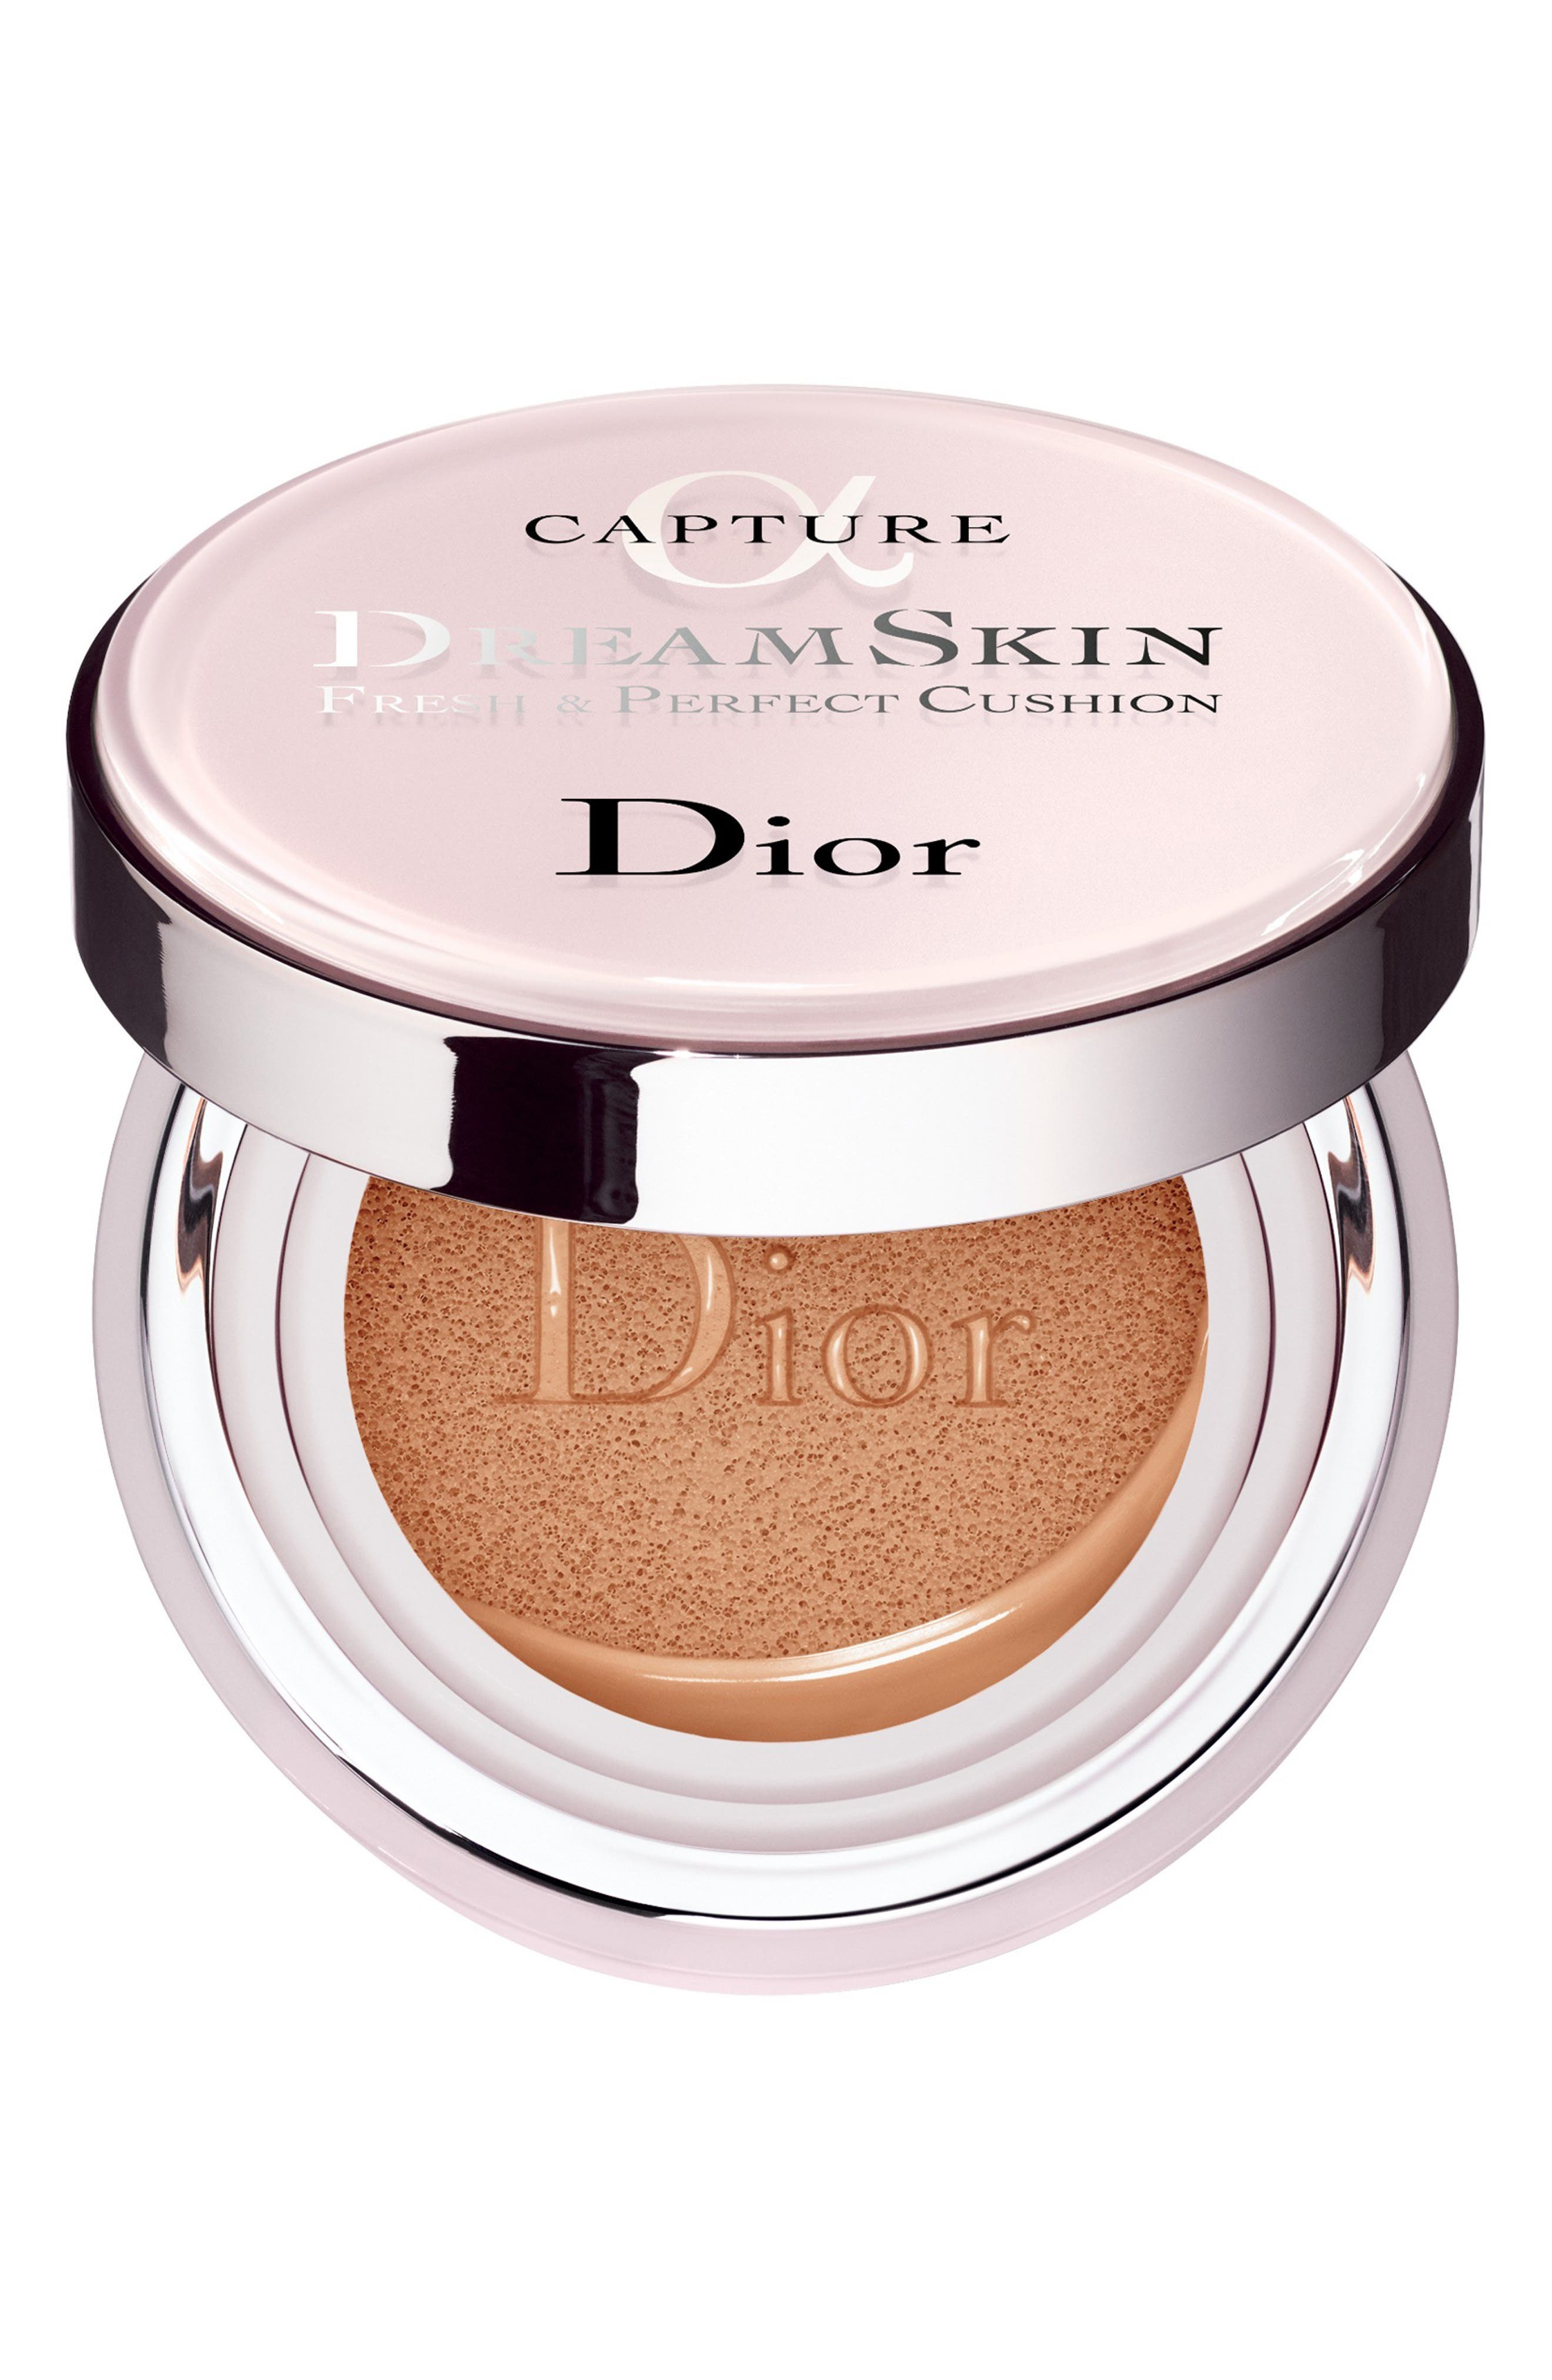 DIOR, DreamSkin Fresh & Perfect Cushion Broad Spectrum SPF 50, Main thumbnail 1, color, 025